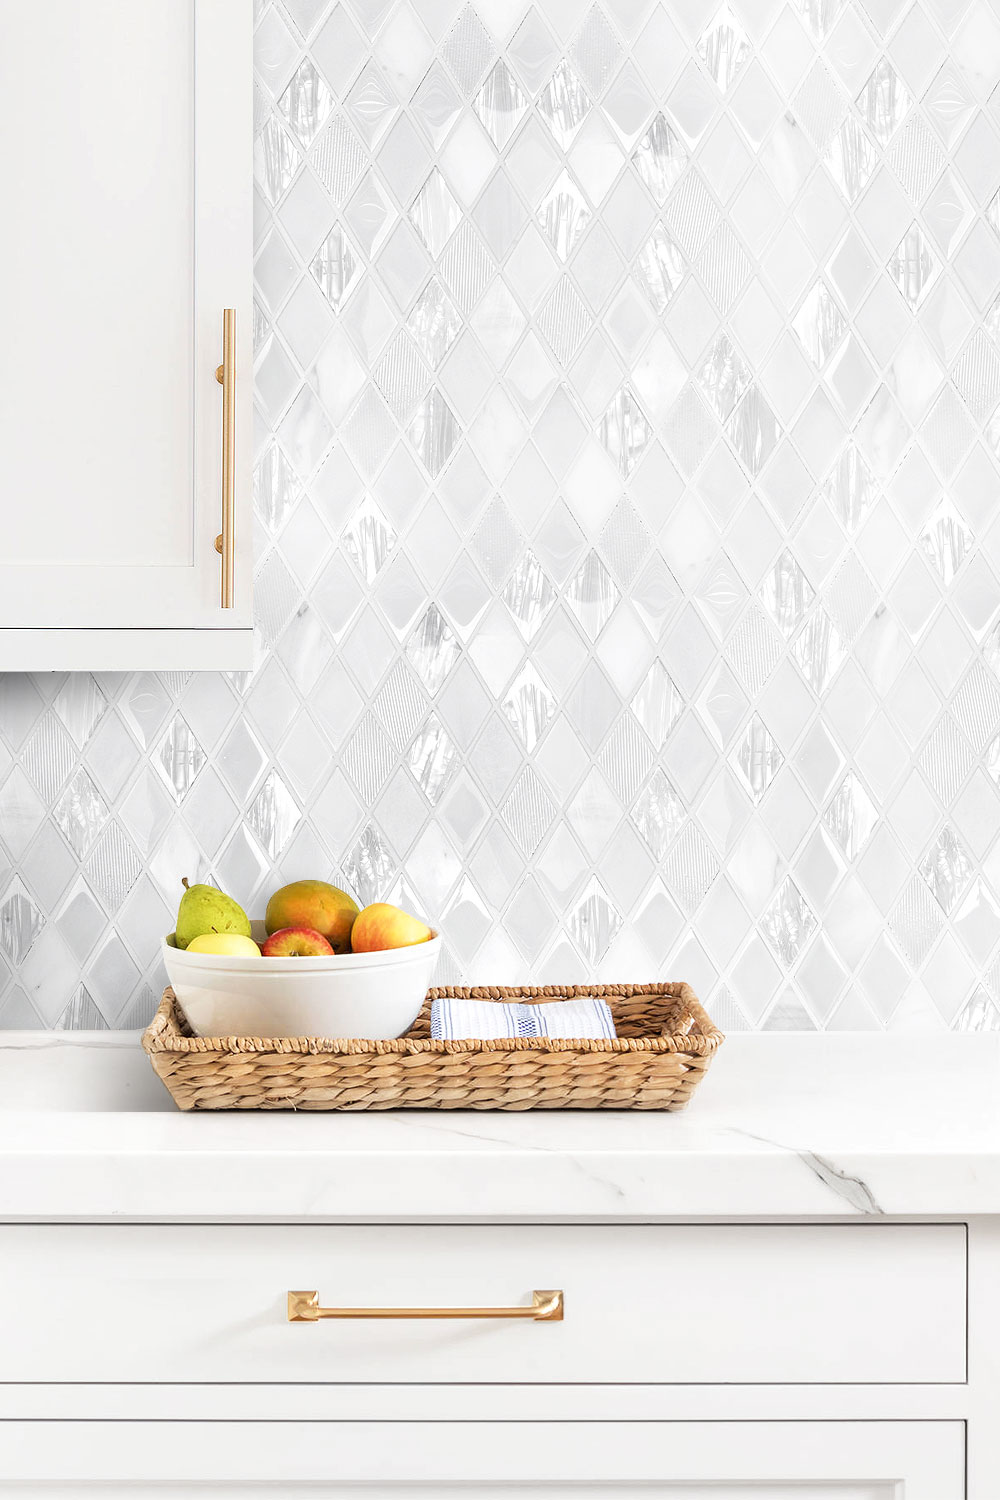 - Elegant White Rhomboid Backsplash Tile Backsplash.com